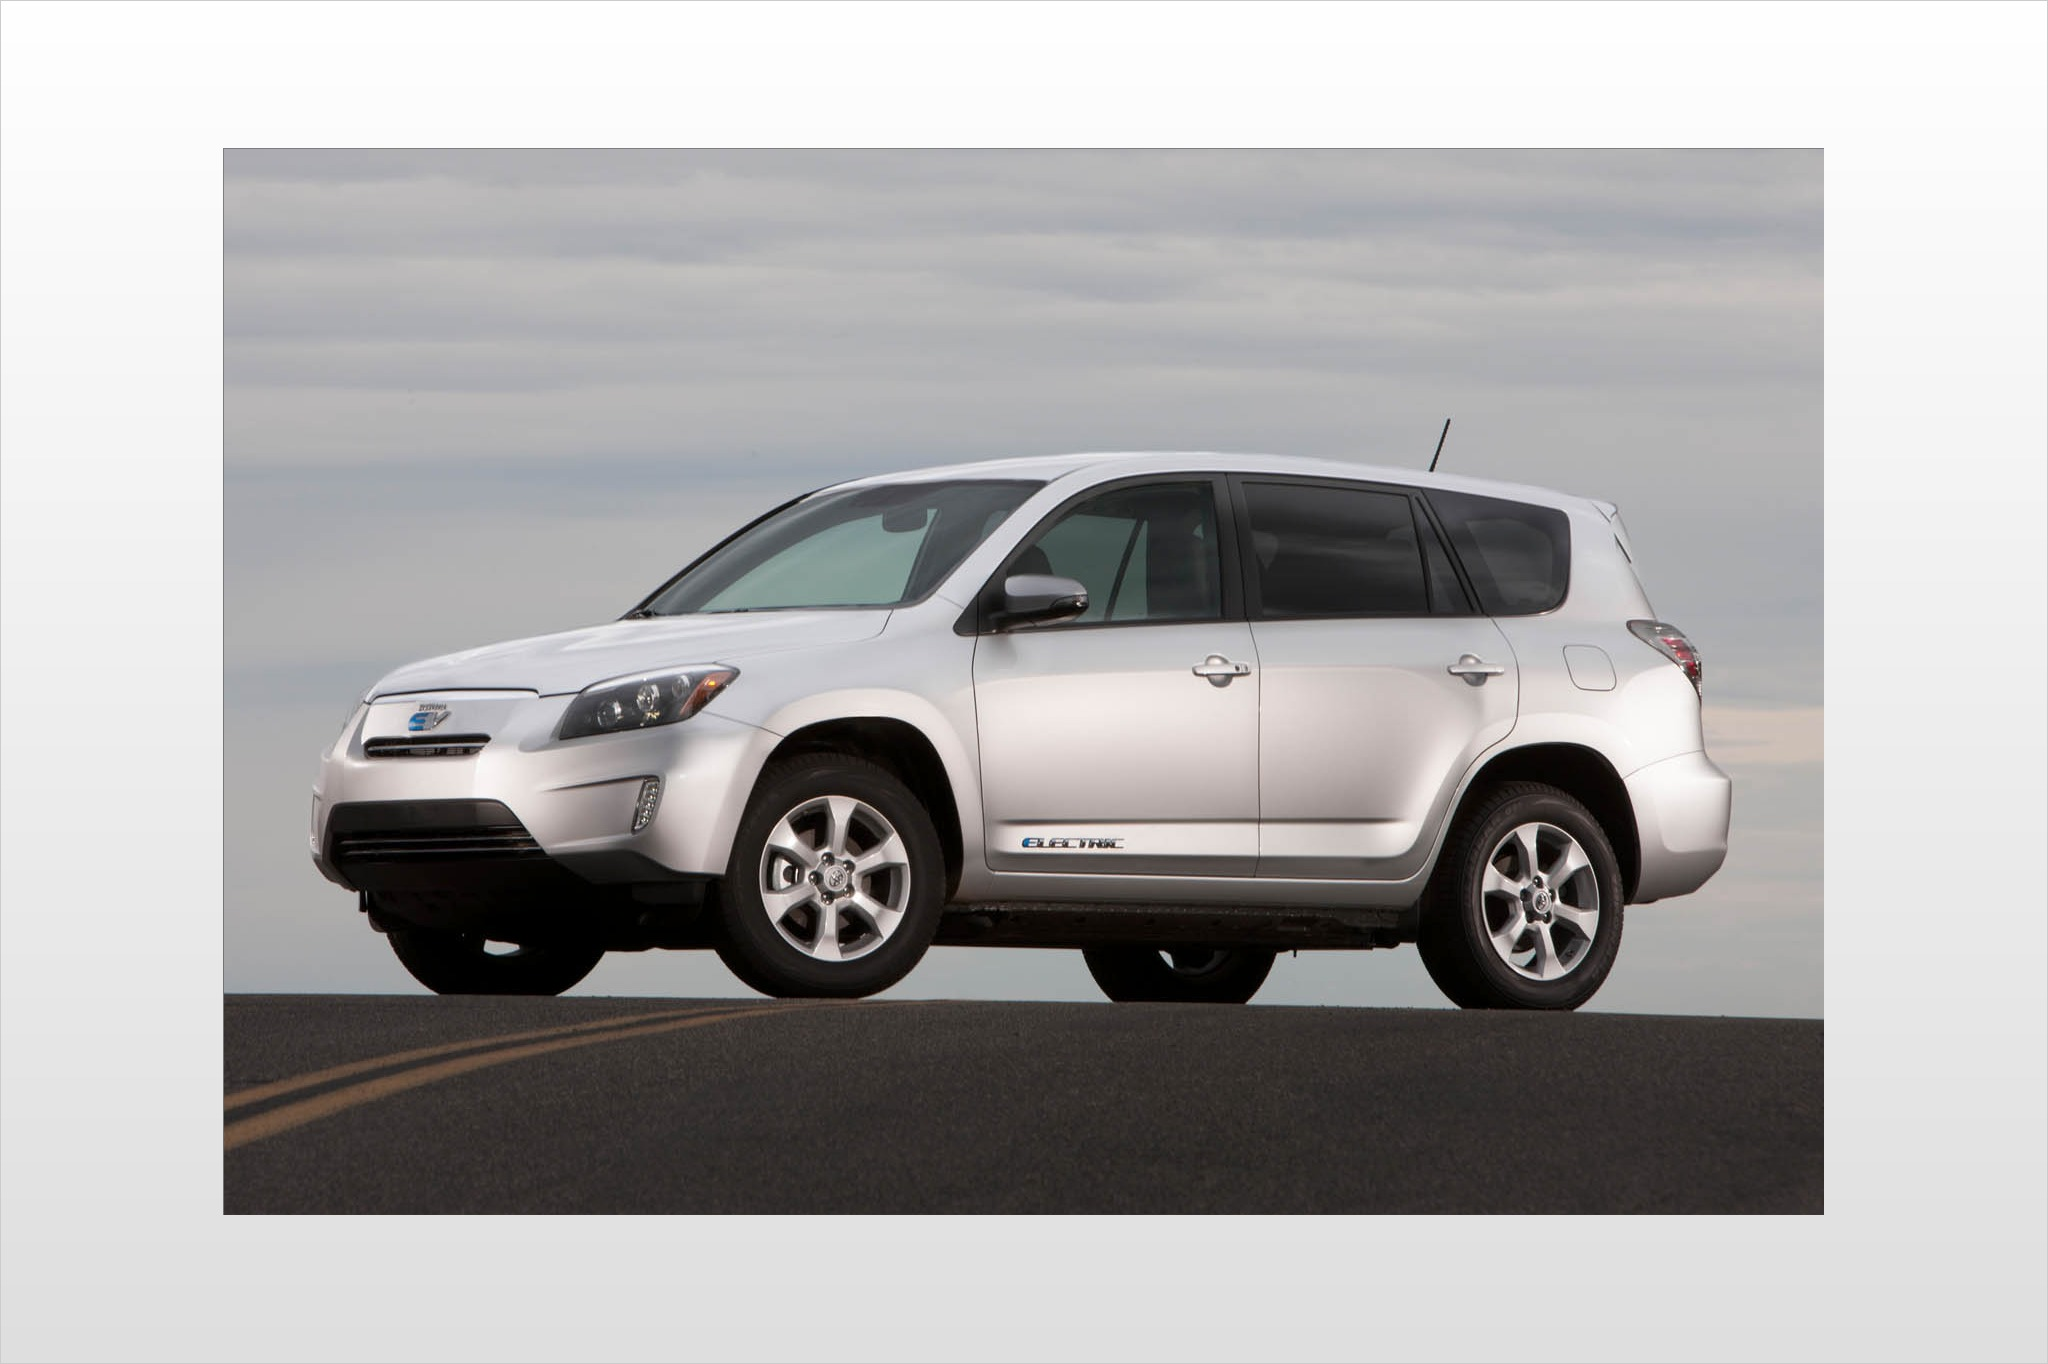 Toyota rav4 maintenance schedule 2013